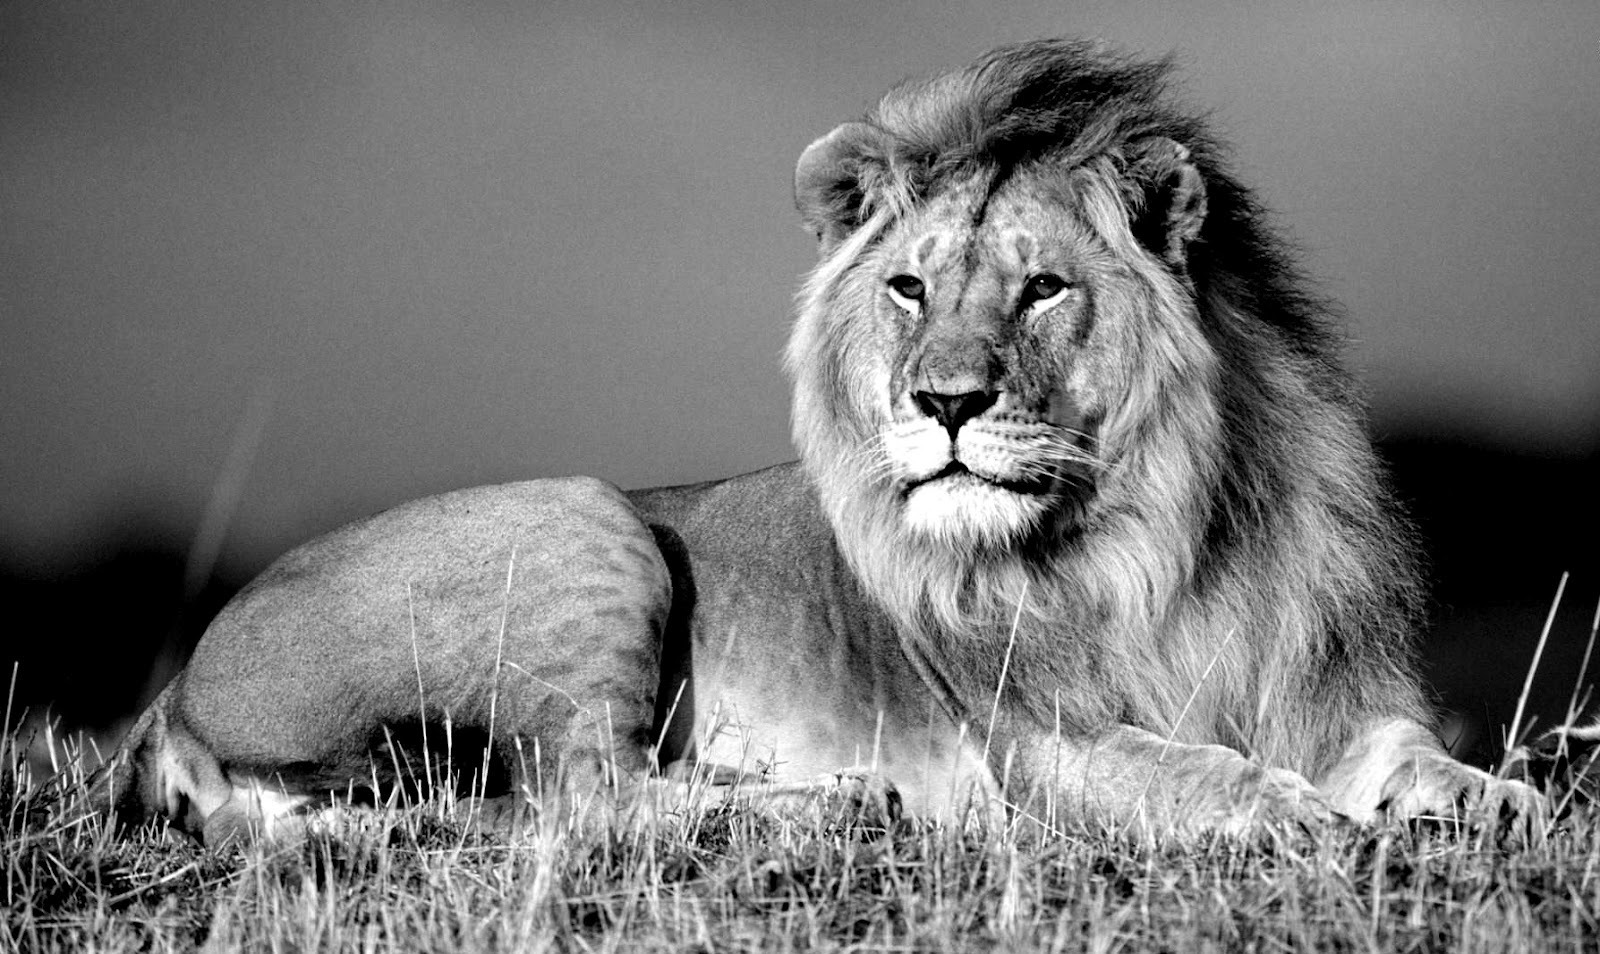 Lion black and white photography jsr 75 · trololo blogg wallpaper mxpx